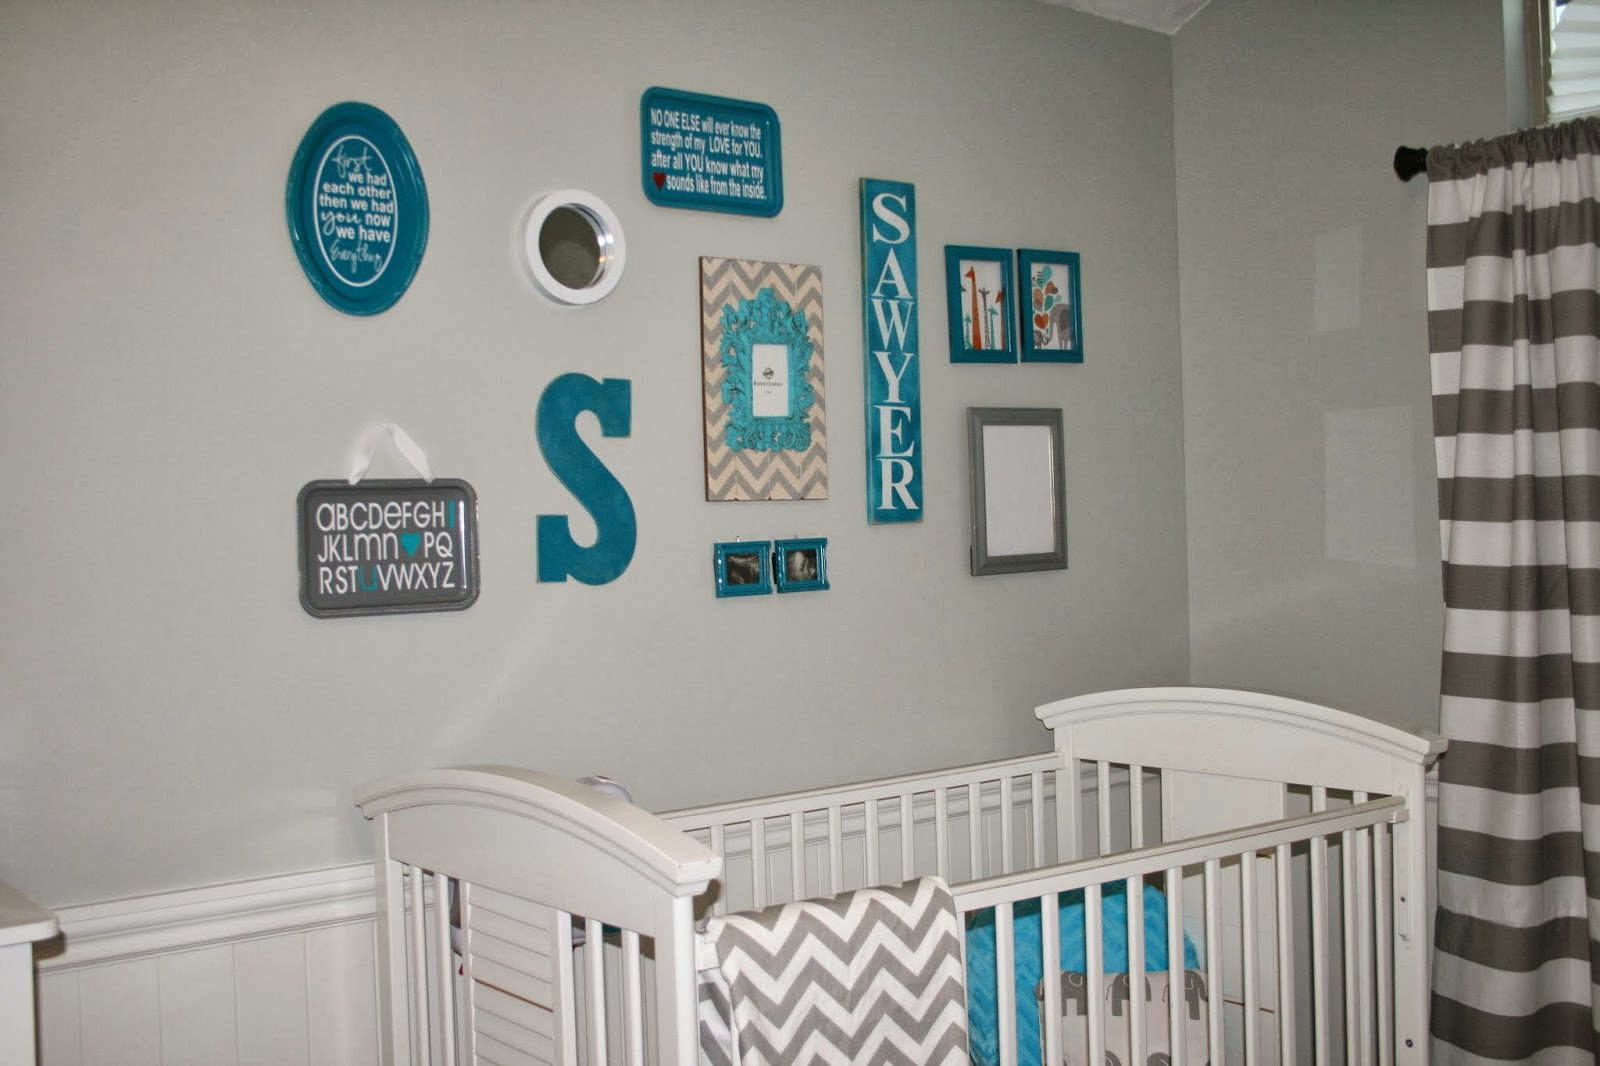 Creative juices baby room decor and collage wall for Room wall decor